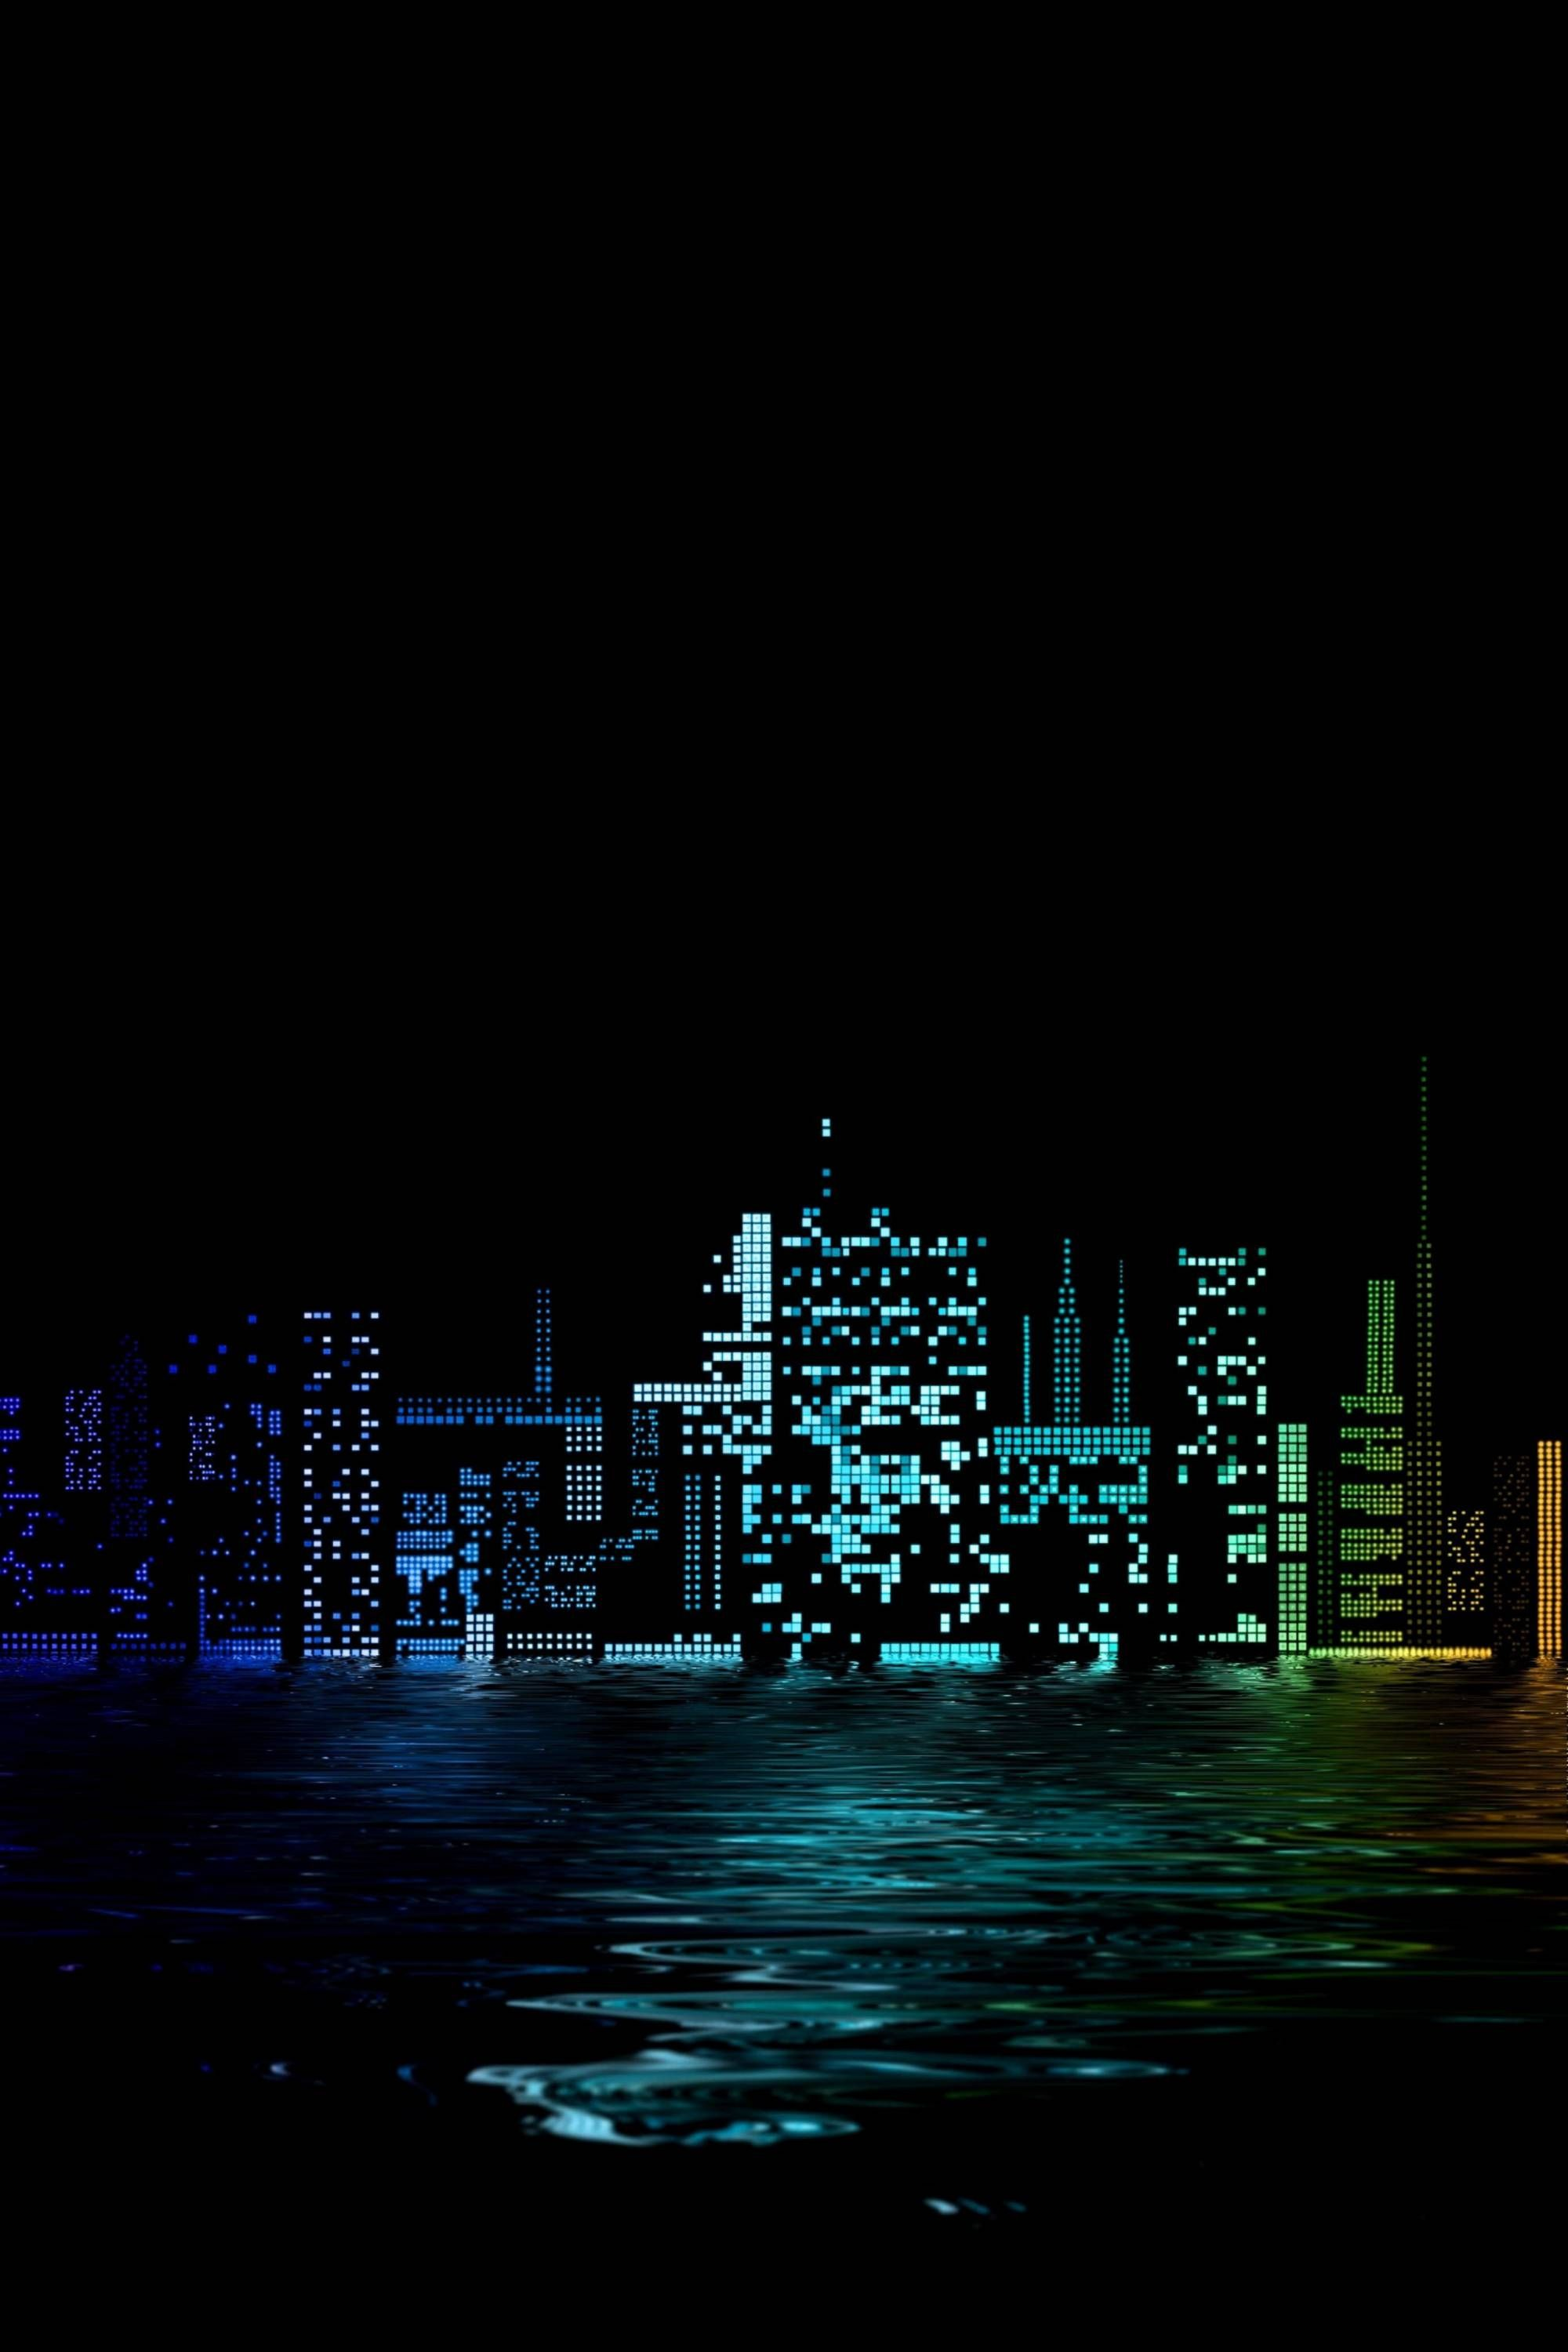 city in night amoled wallpaper for android and iphones